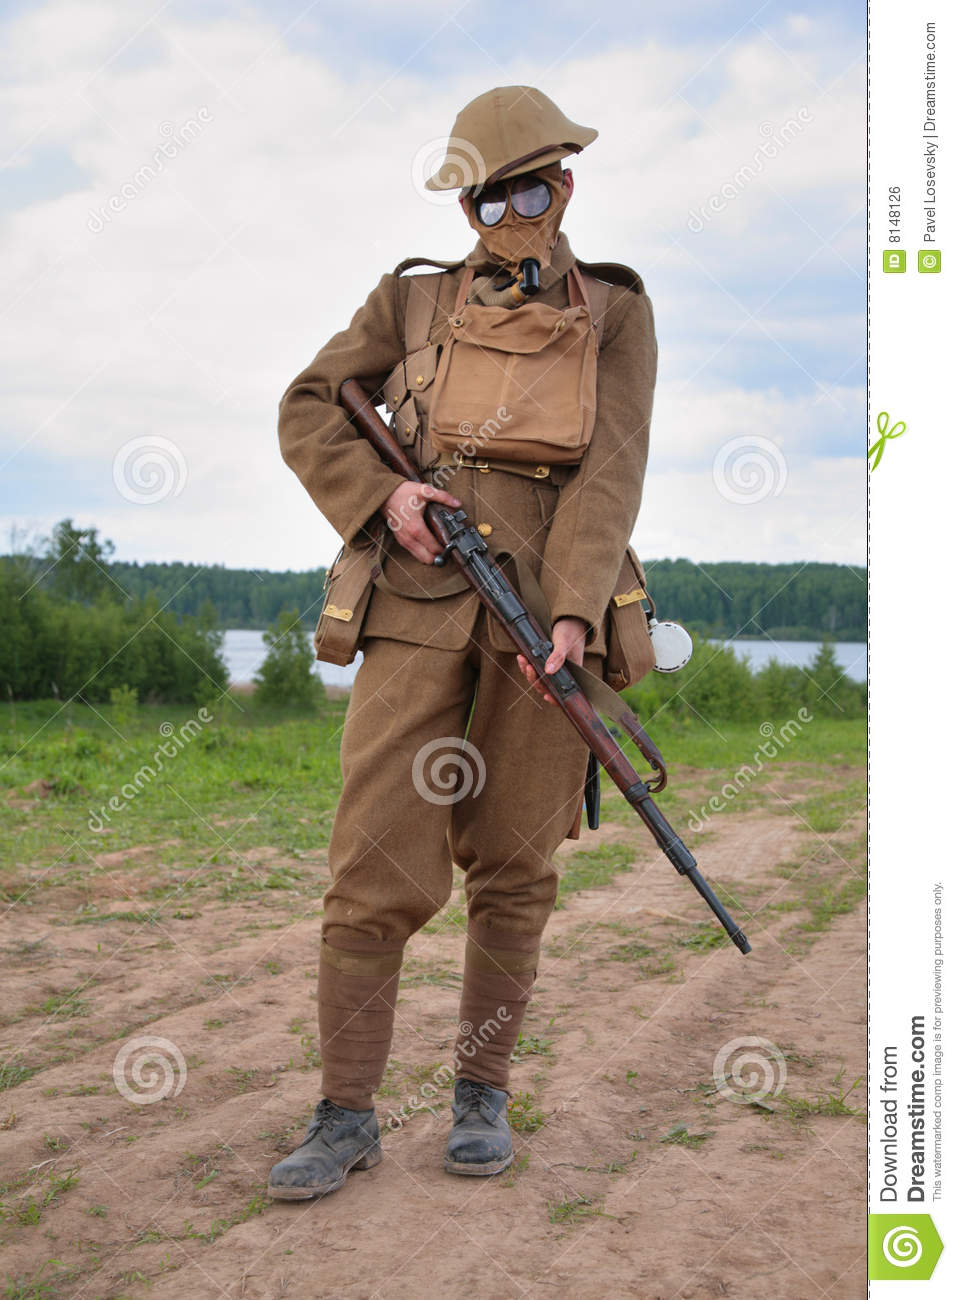 Royalty Free Stock Image  Soldier Of Ww1 In A Gas Mask